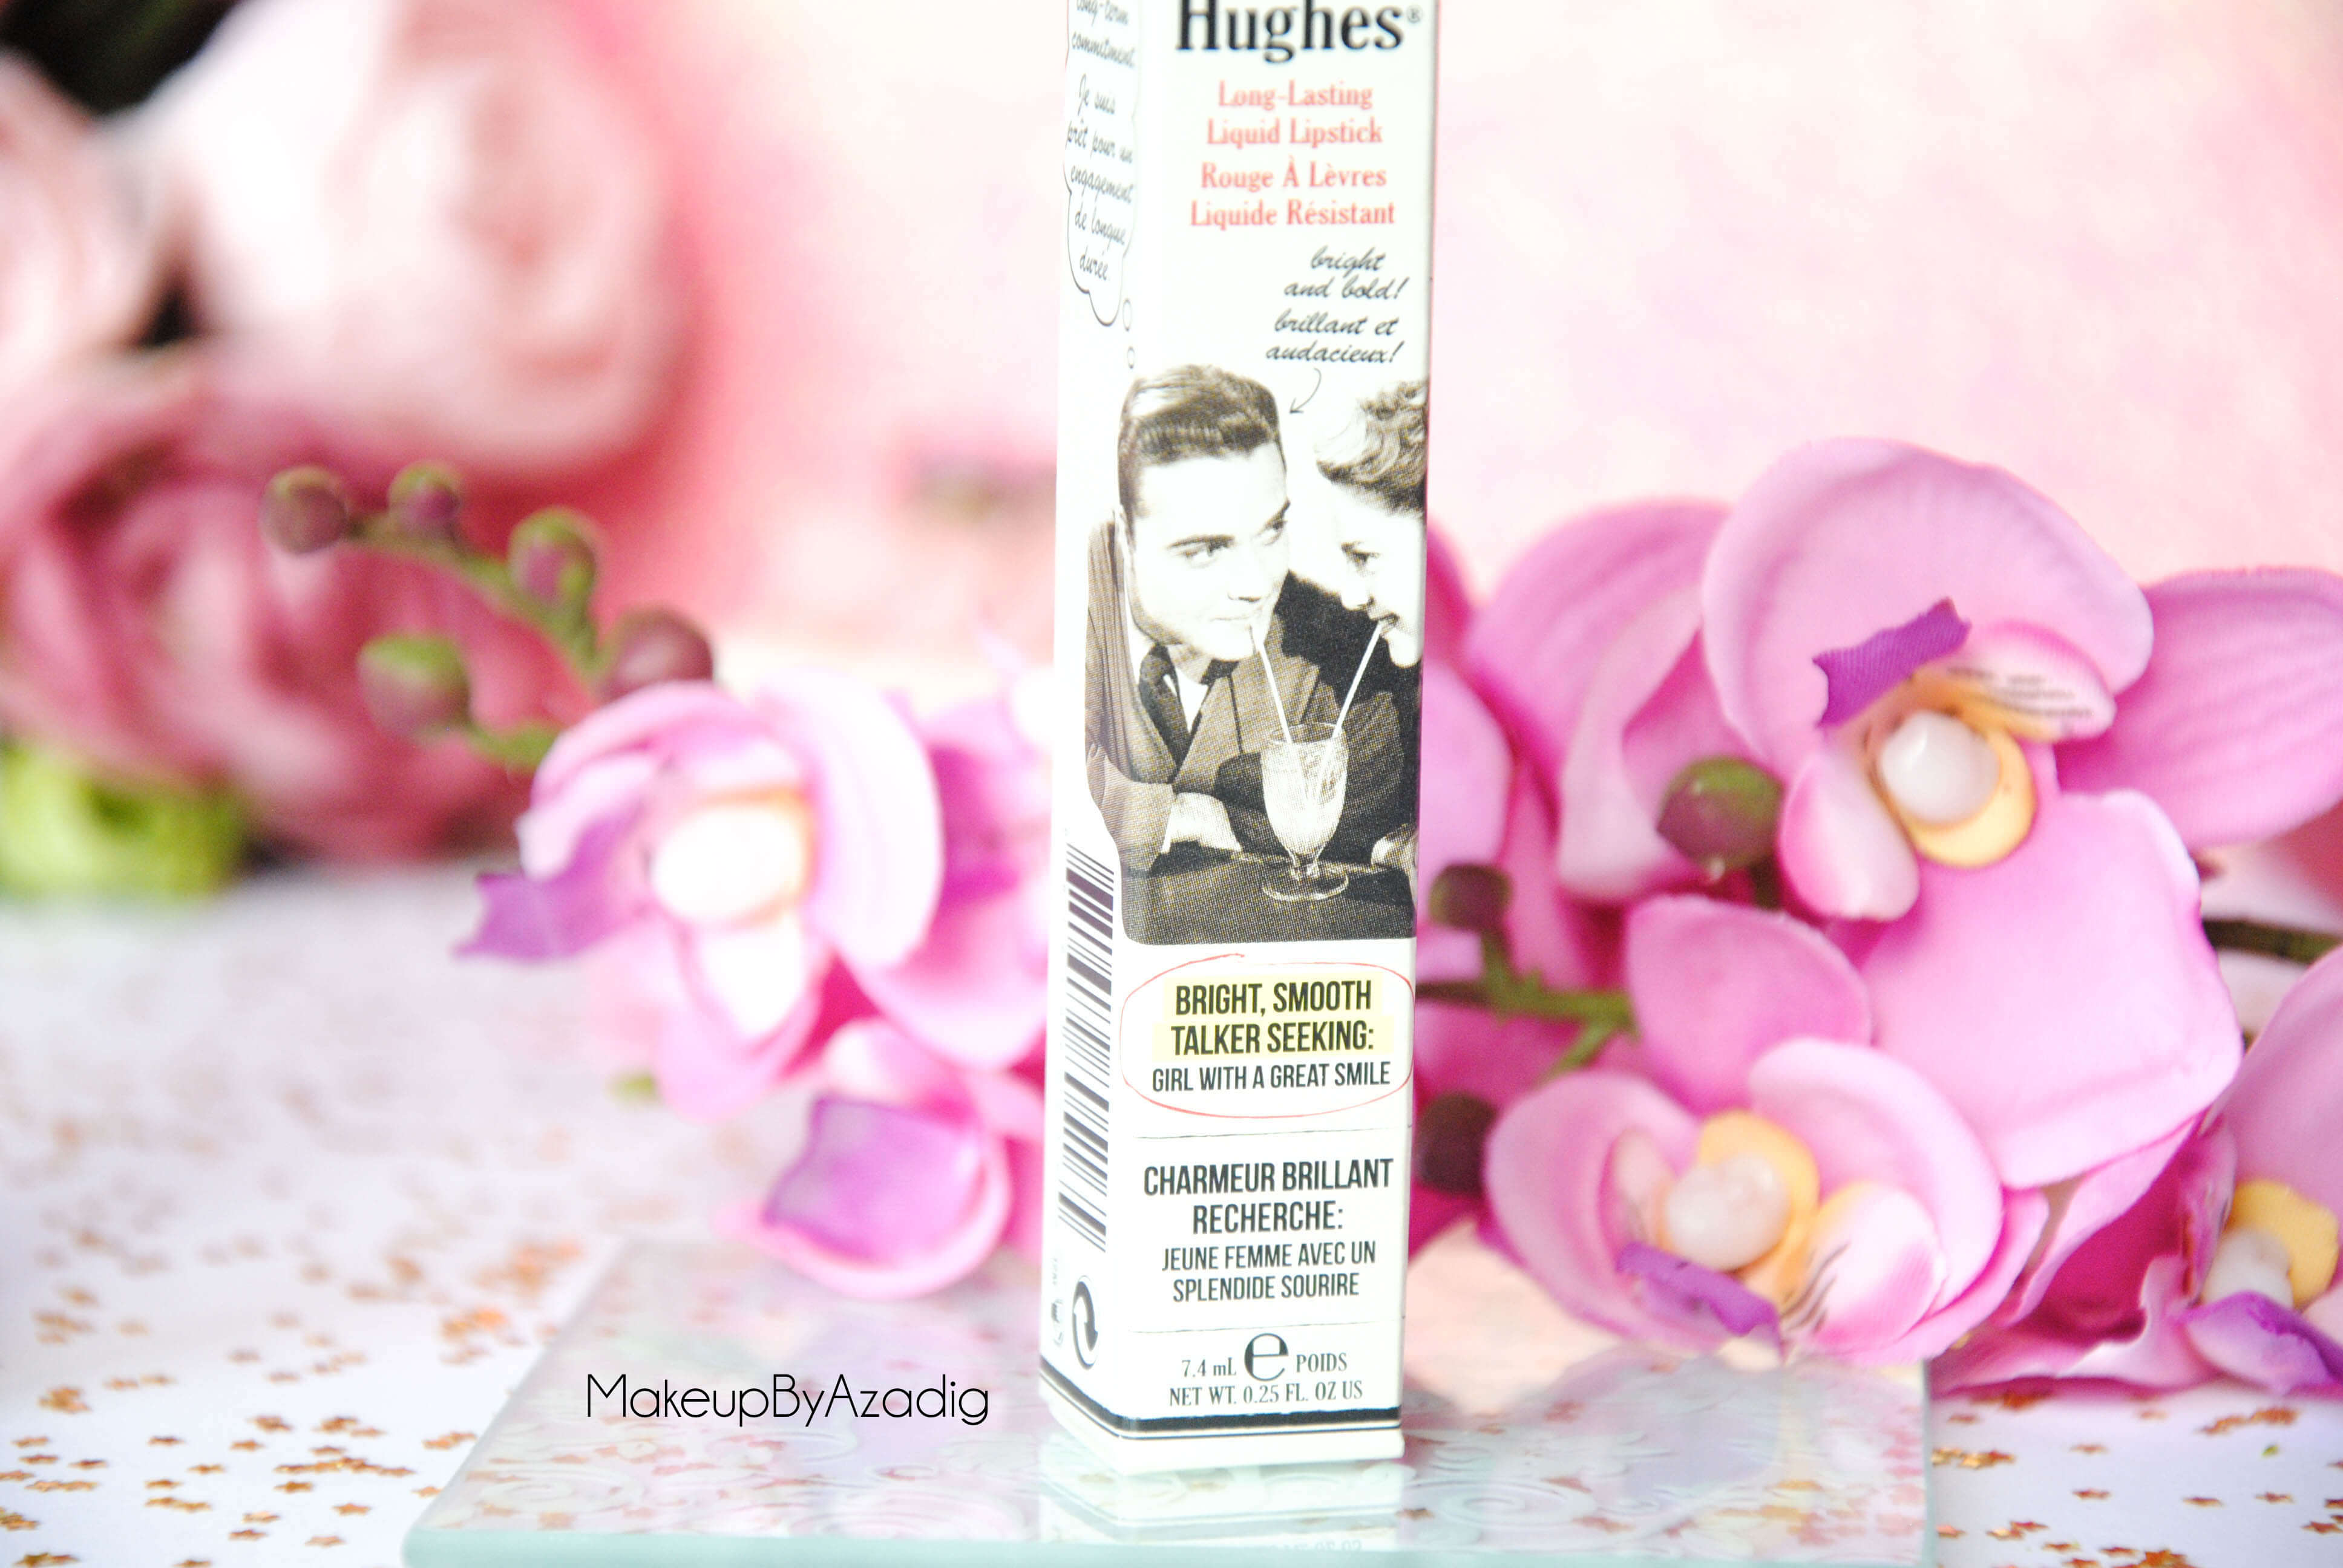 meet-matte-hughes-the-balm-charming-makeupbyazadig-troyes-paris-rouge-levres-liquide-swatch-review-avis-love